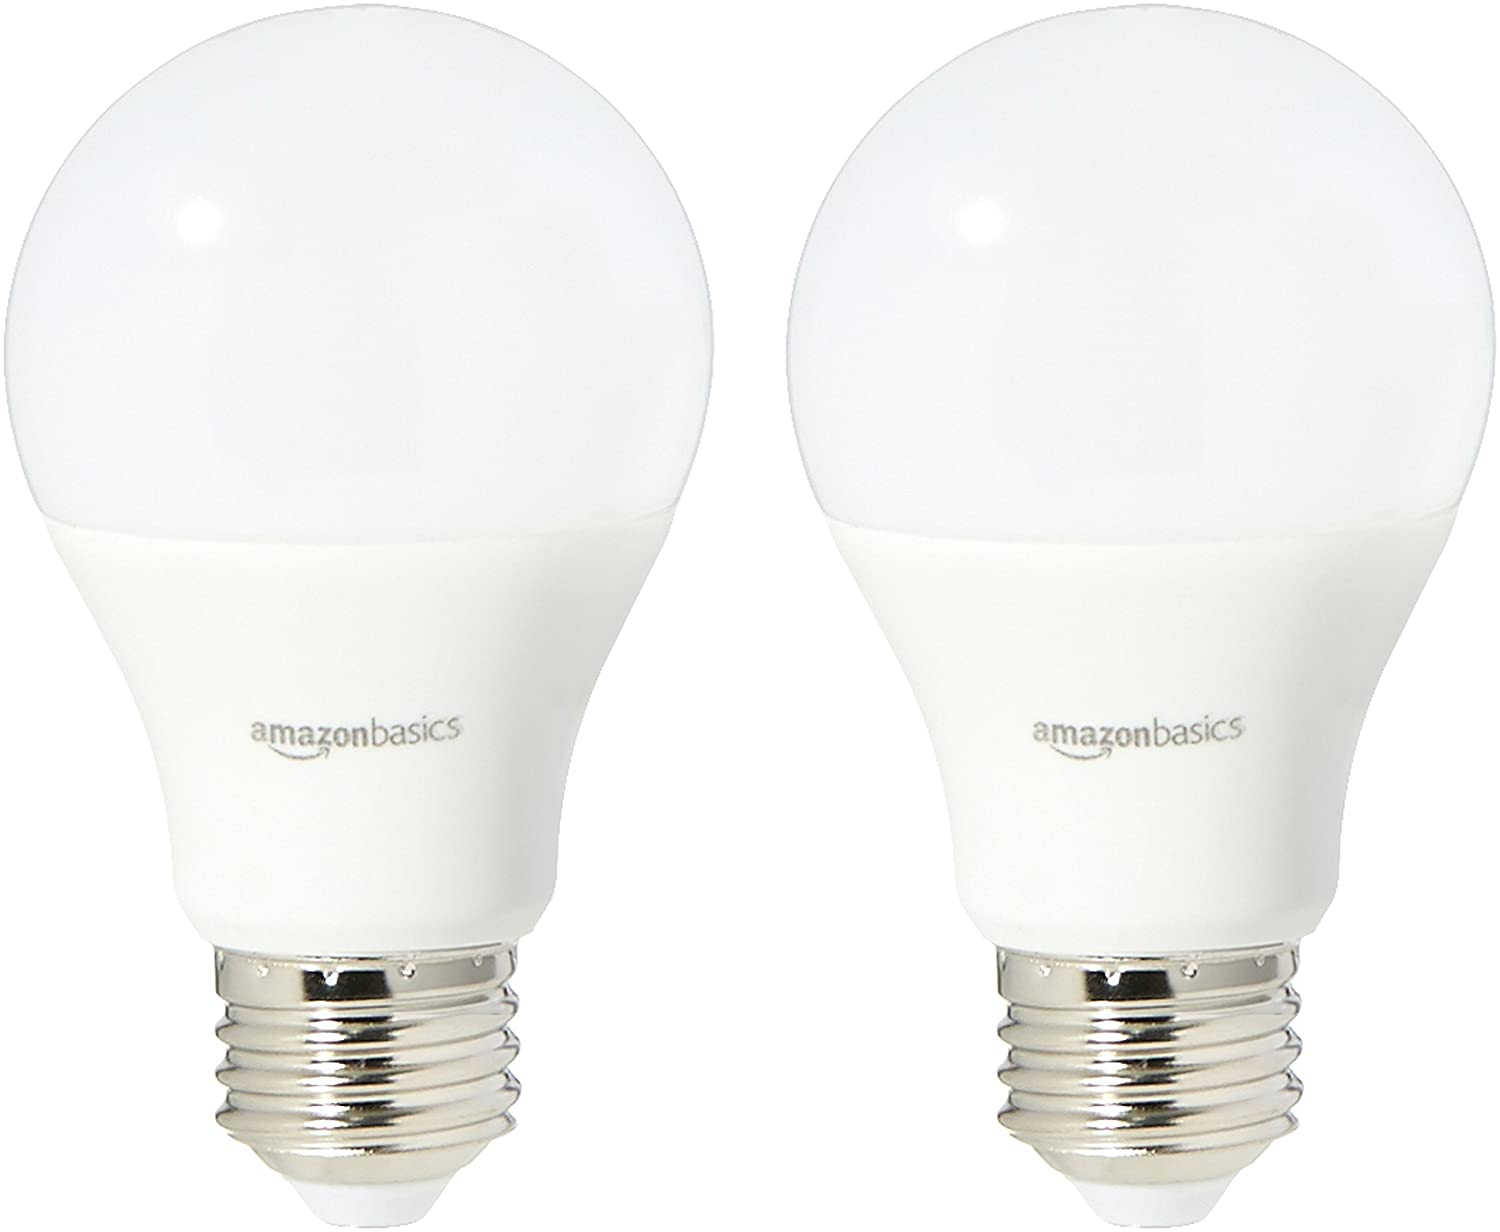 AmazonBasics 60 Watt Equivalent, Soft White, Non-Dimmable, A19 LED Light Bulb | 2-Pack